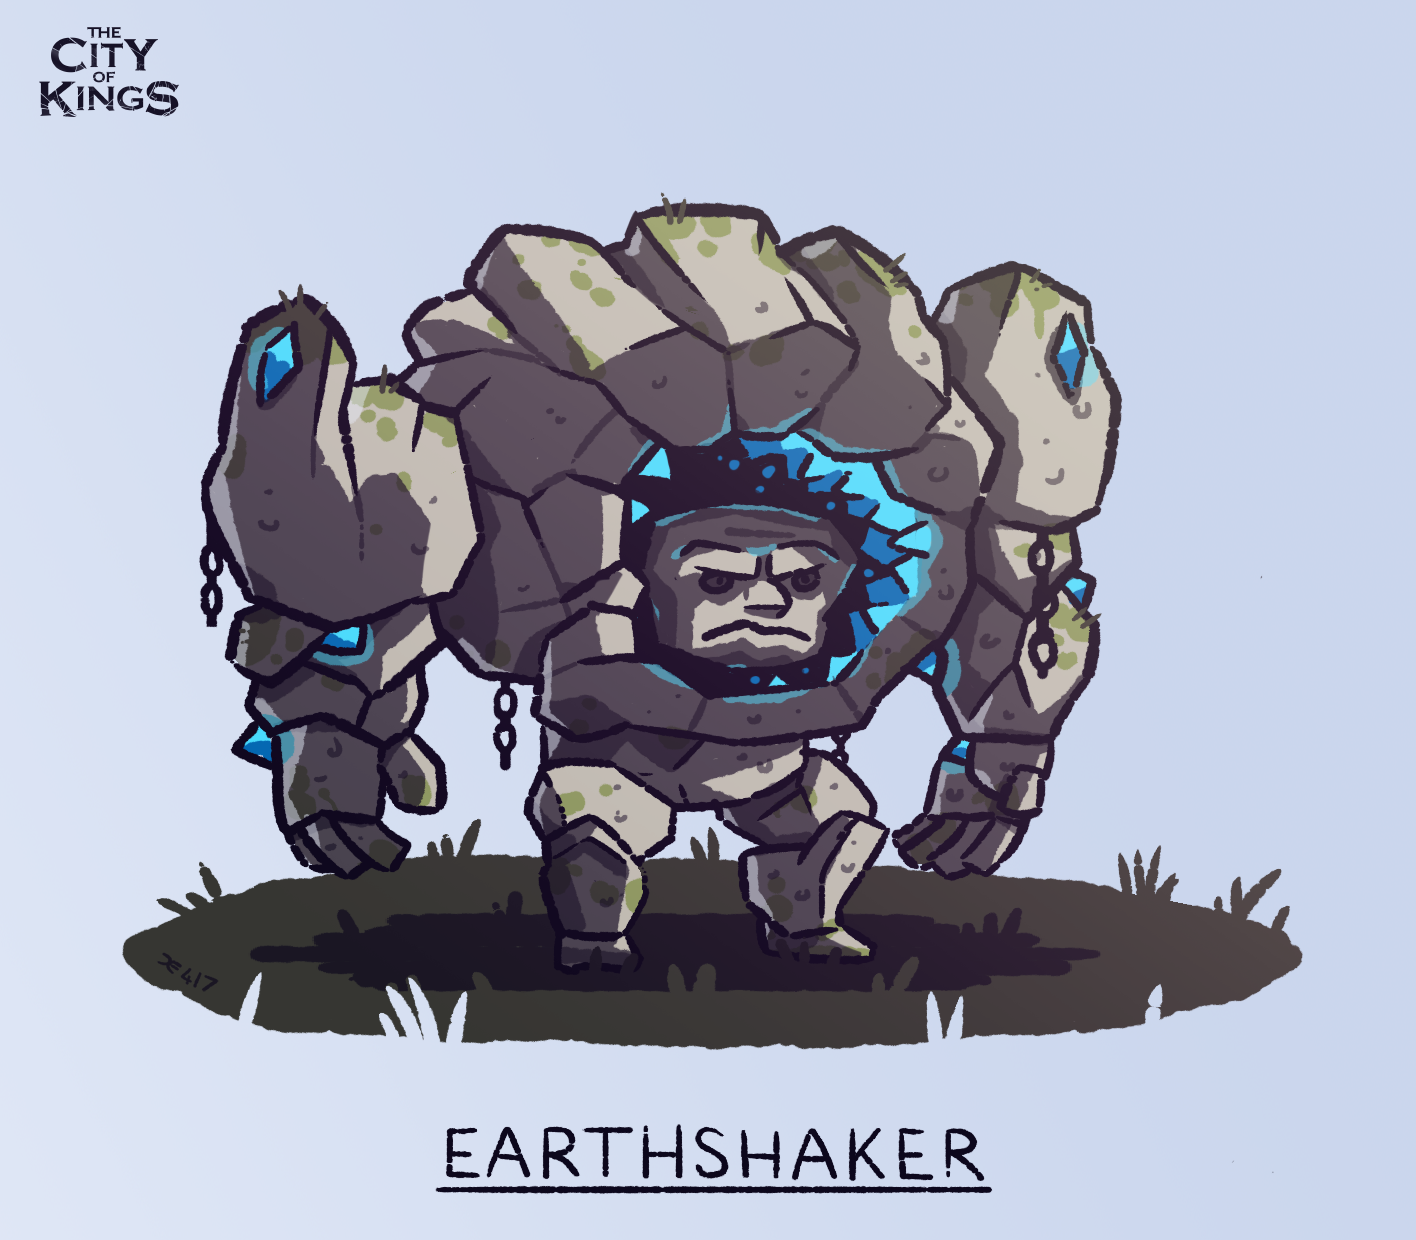 """Earthshaker"" from the board game The City Of Kings"